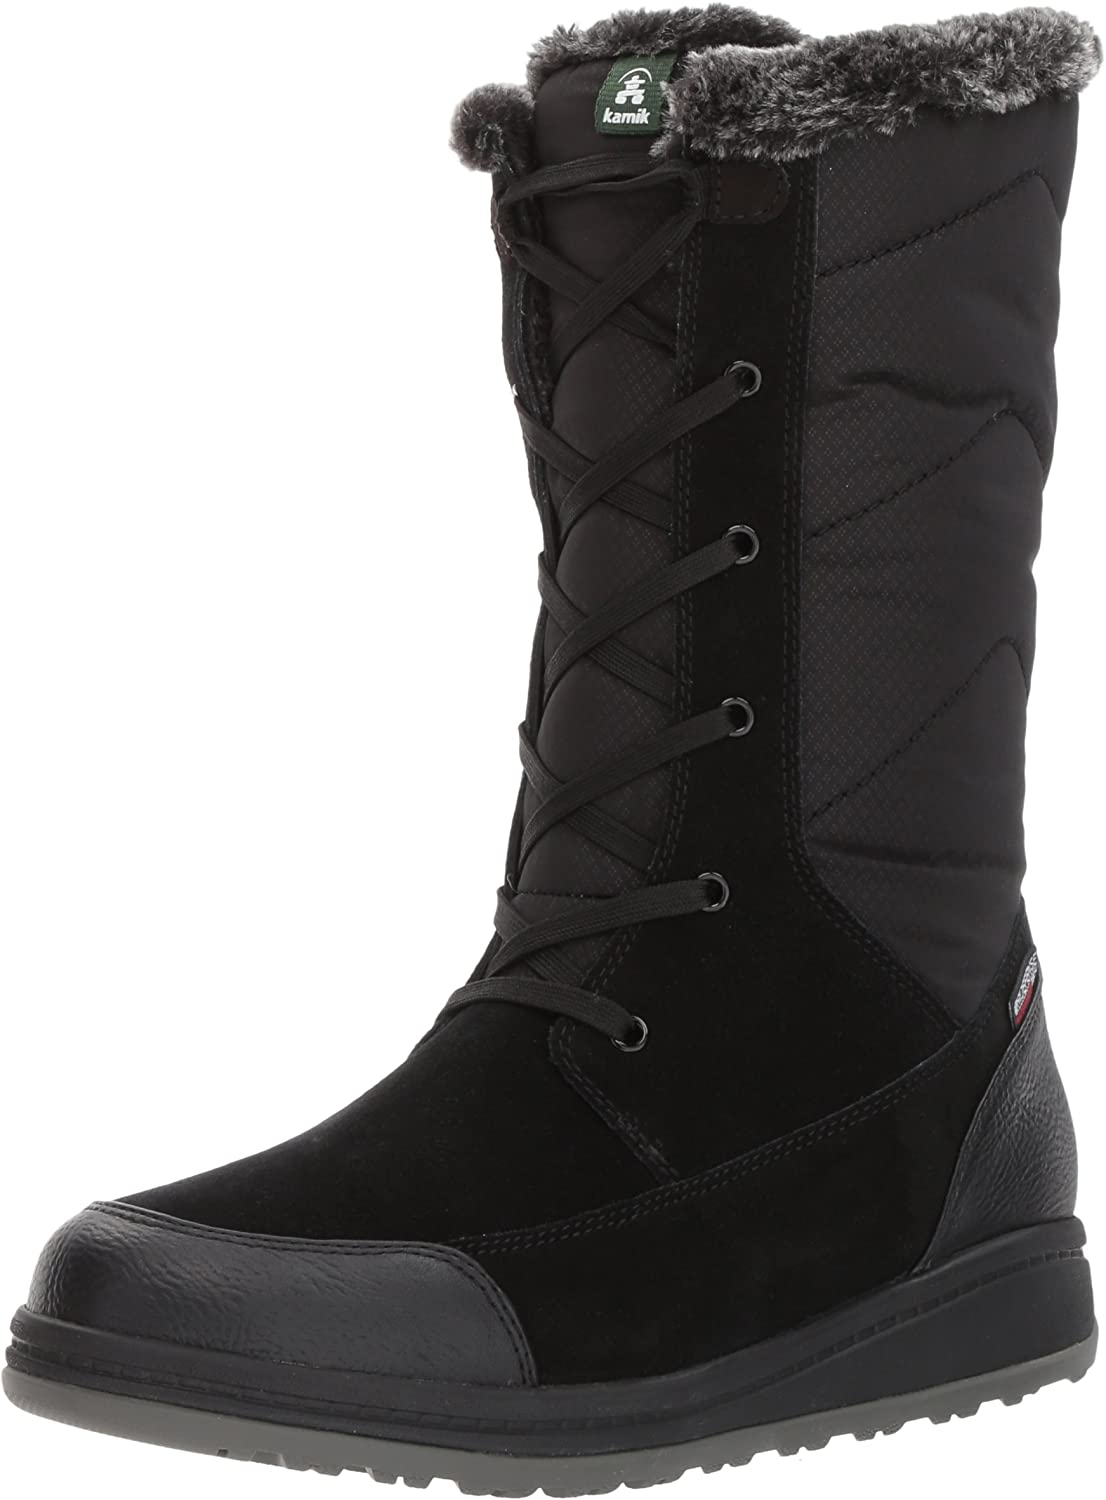 Kamik Women's QuincyS Snow Boot